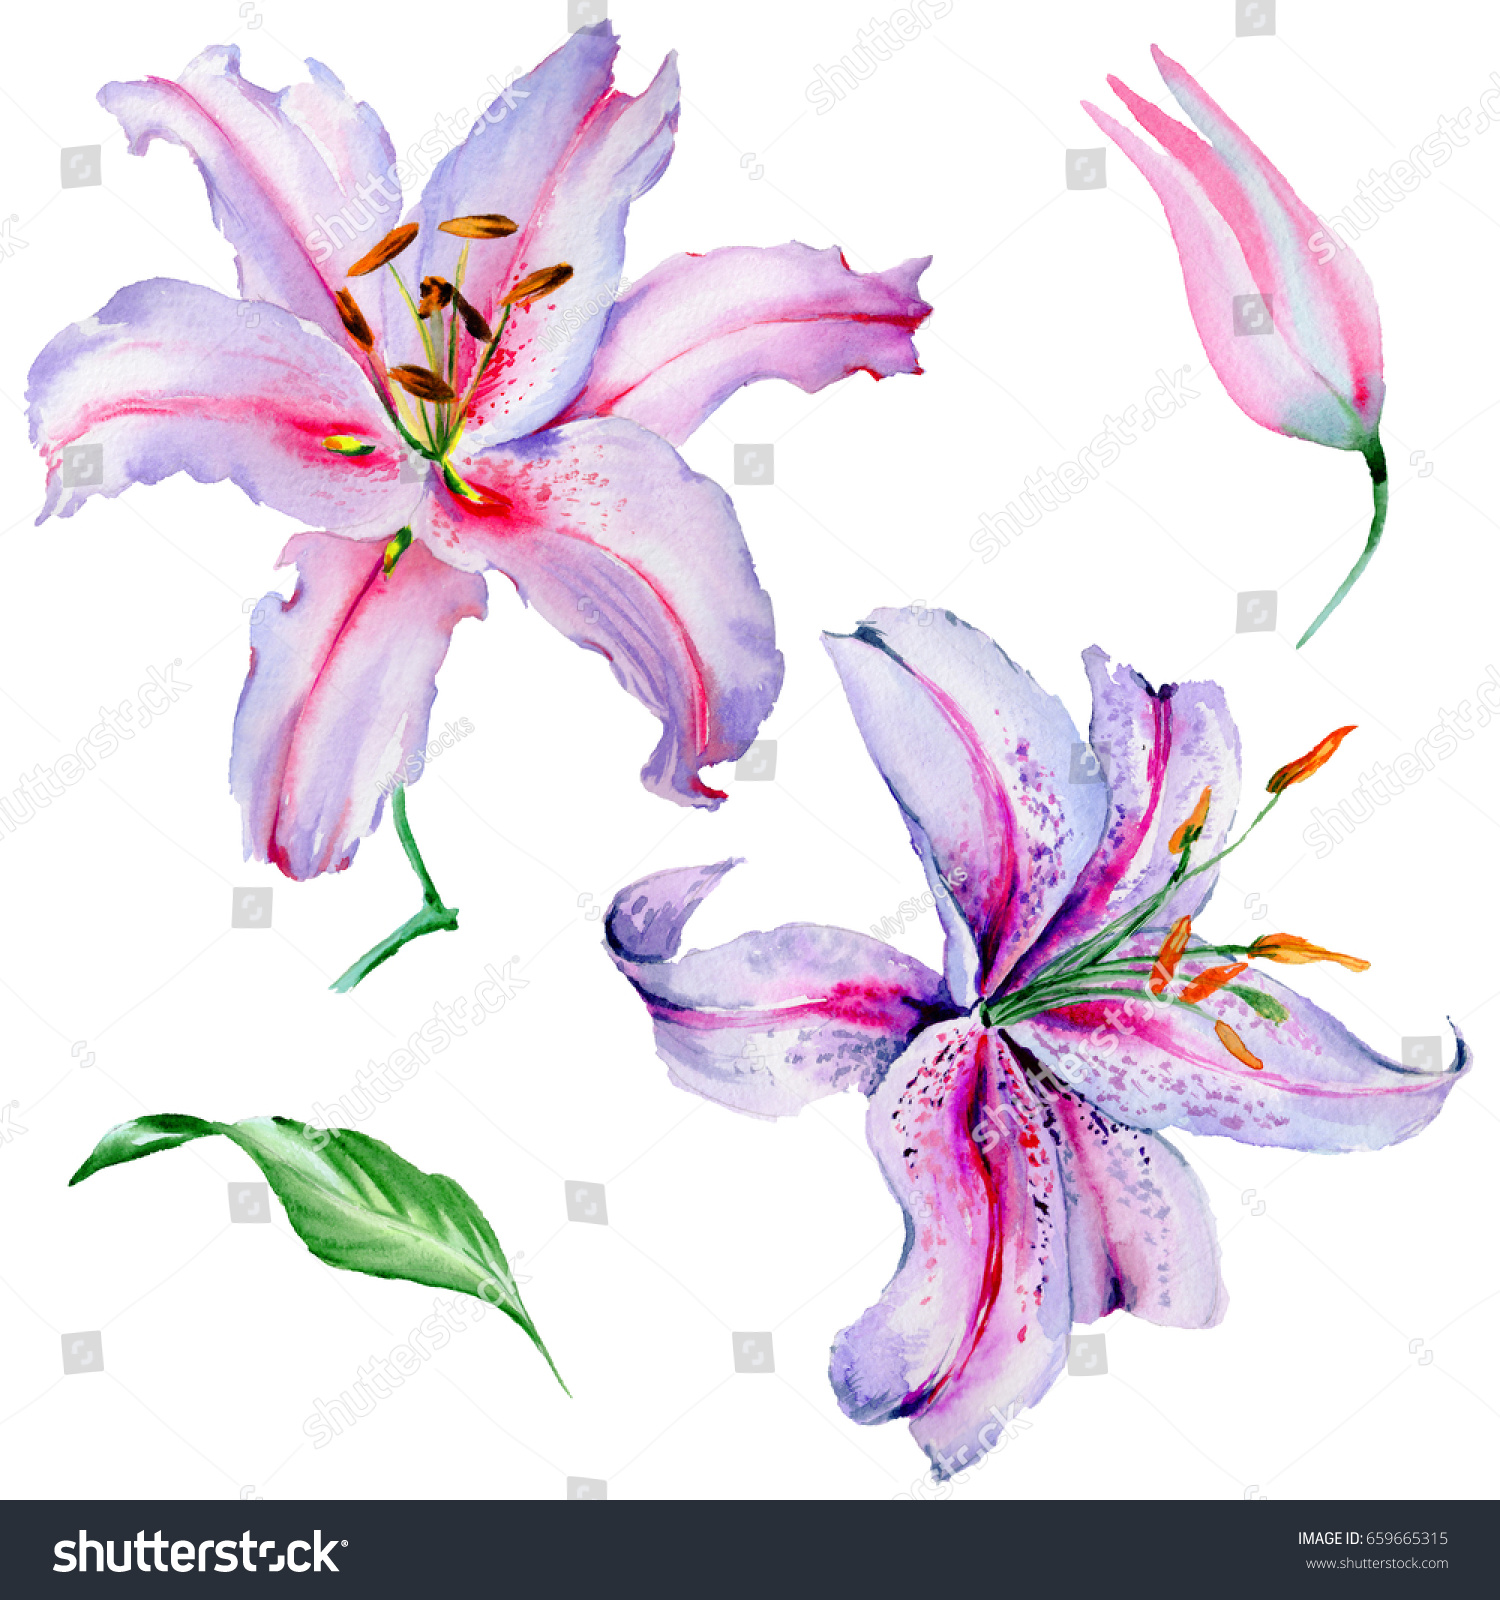 Similar images stock photos vectors of wildflower lily flower similar images to wildflower lily flower in a watercolor style isolated aquarelle wild flower for background texture wrapper pattern frame or border izmirmasajfo